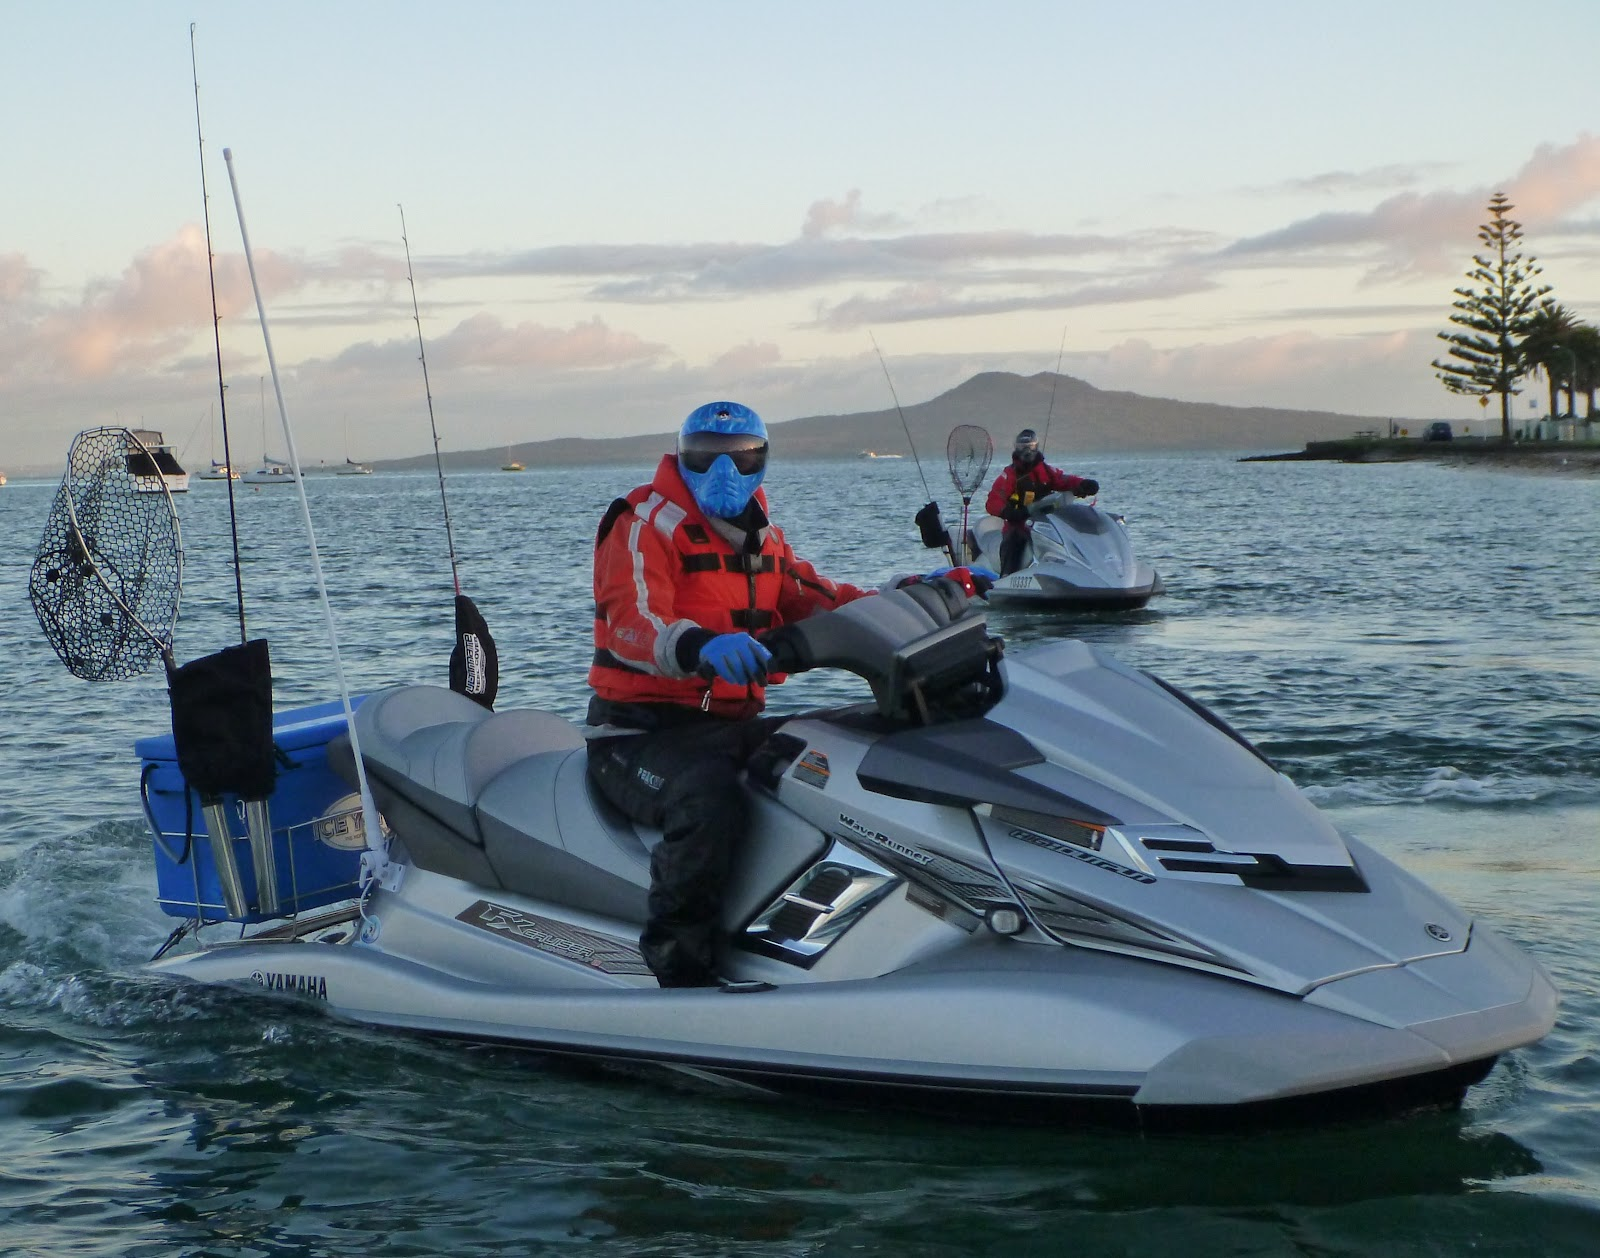 Jet ski fishing blog report 084 living the dream with for Best jet ski for fishing